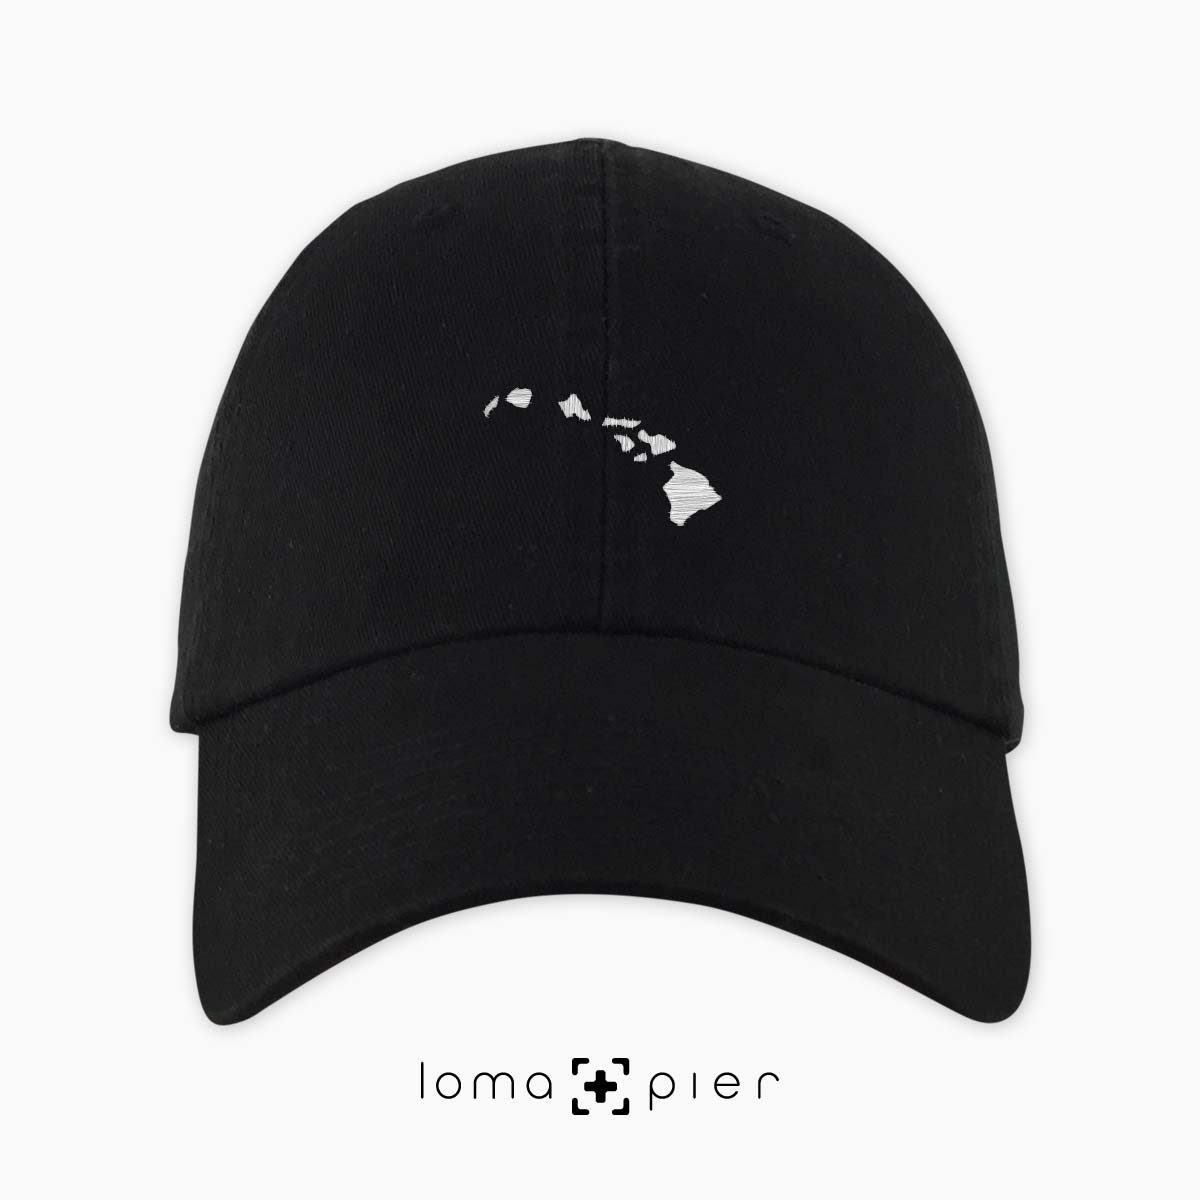 HAWAIIAN ISLANDS icon embroidered on a black hawaii dad hat by loma+pier hat store made in the USA